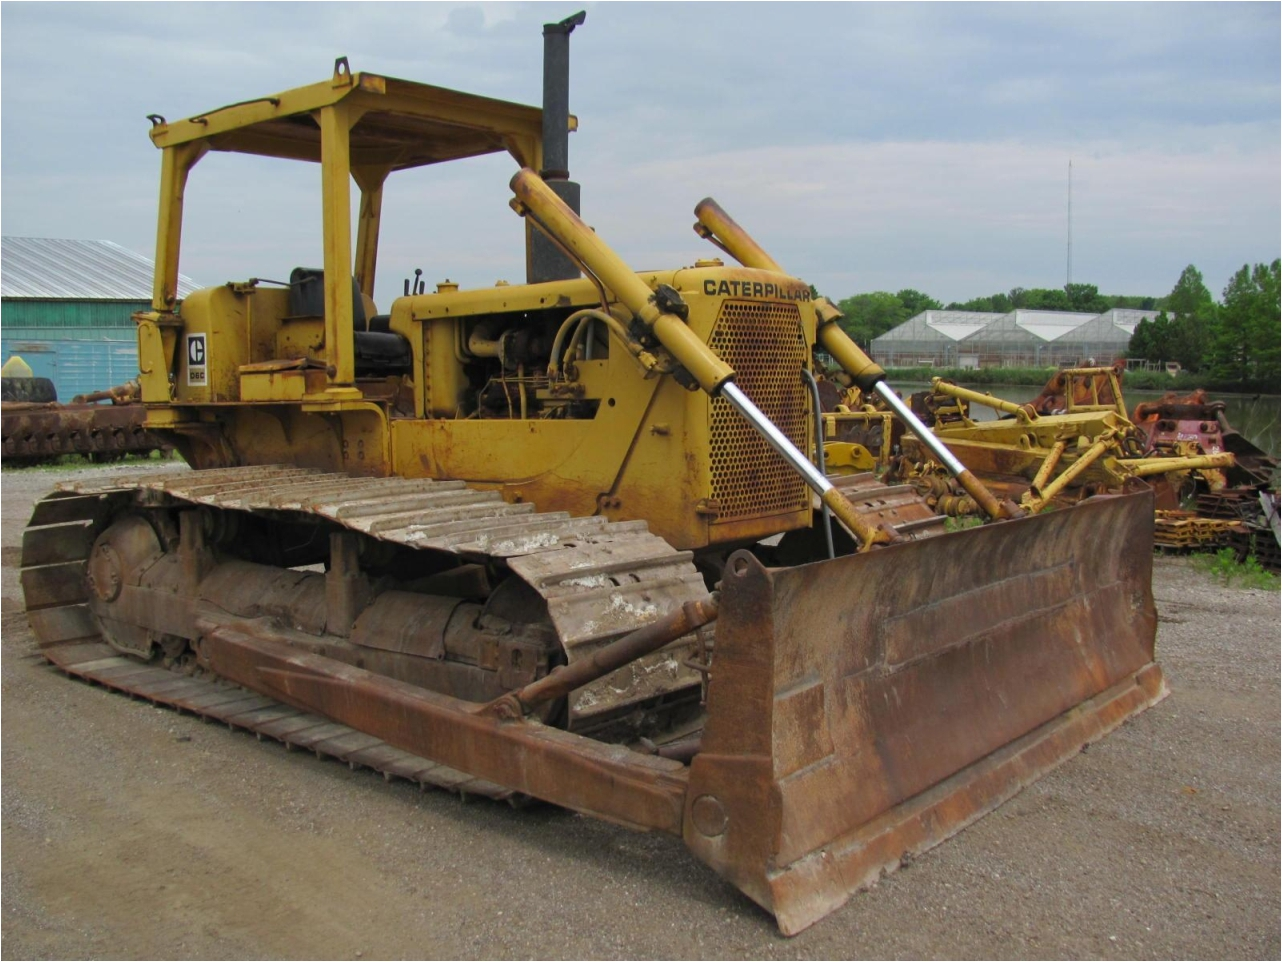 2016 Caterpillar d8 photo - 2